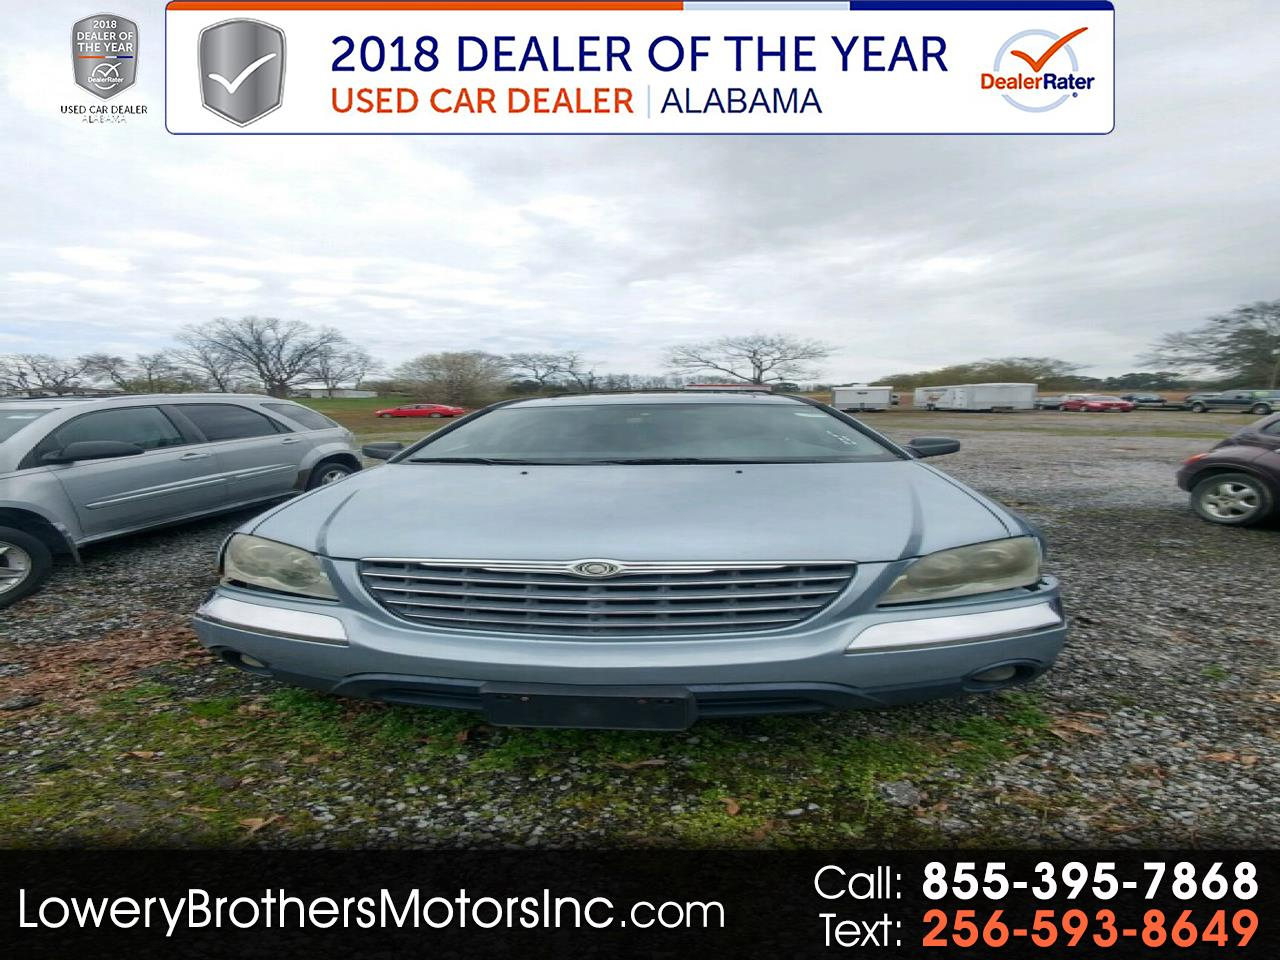 2005 Chrysler Pacifica 4dr Wgn Touring FWD